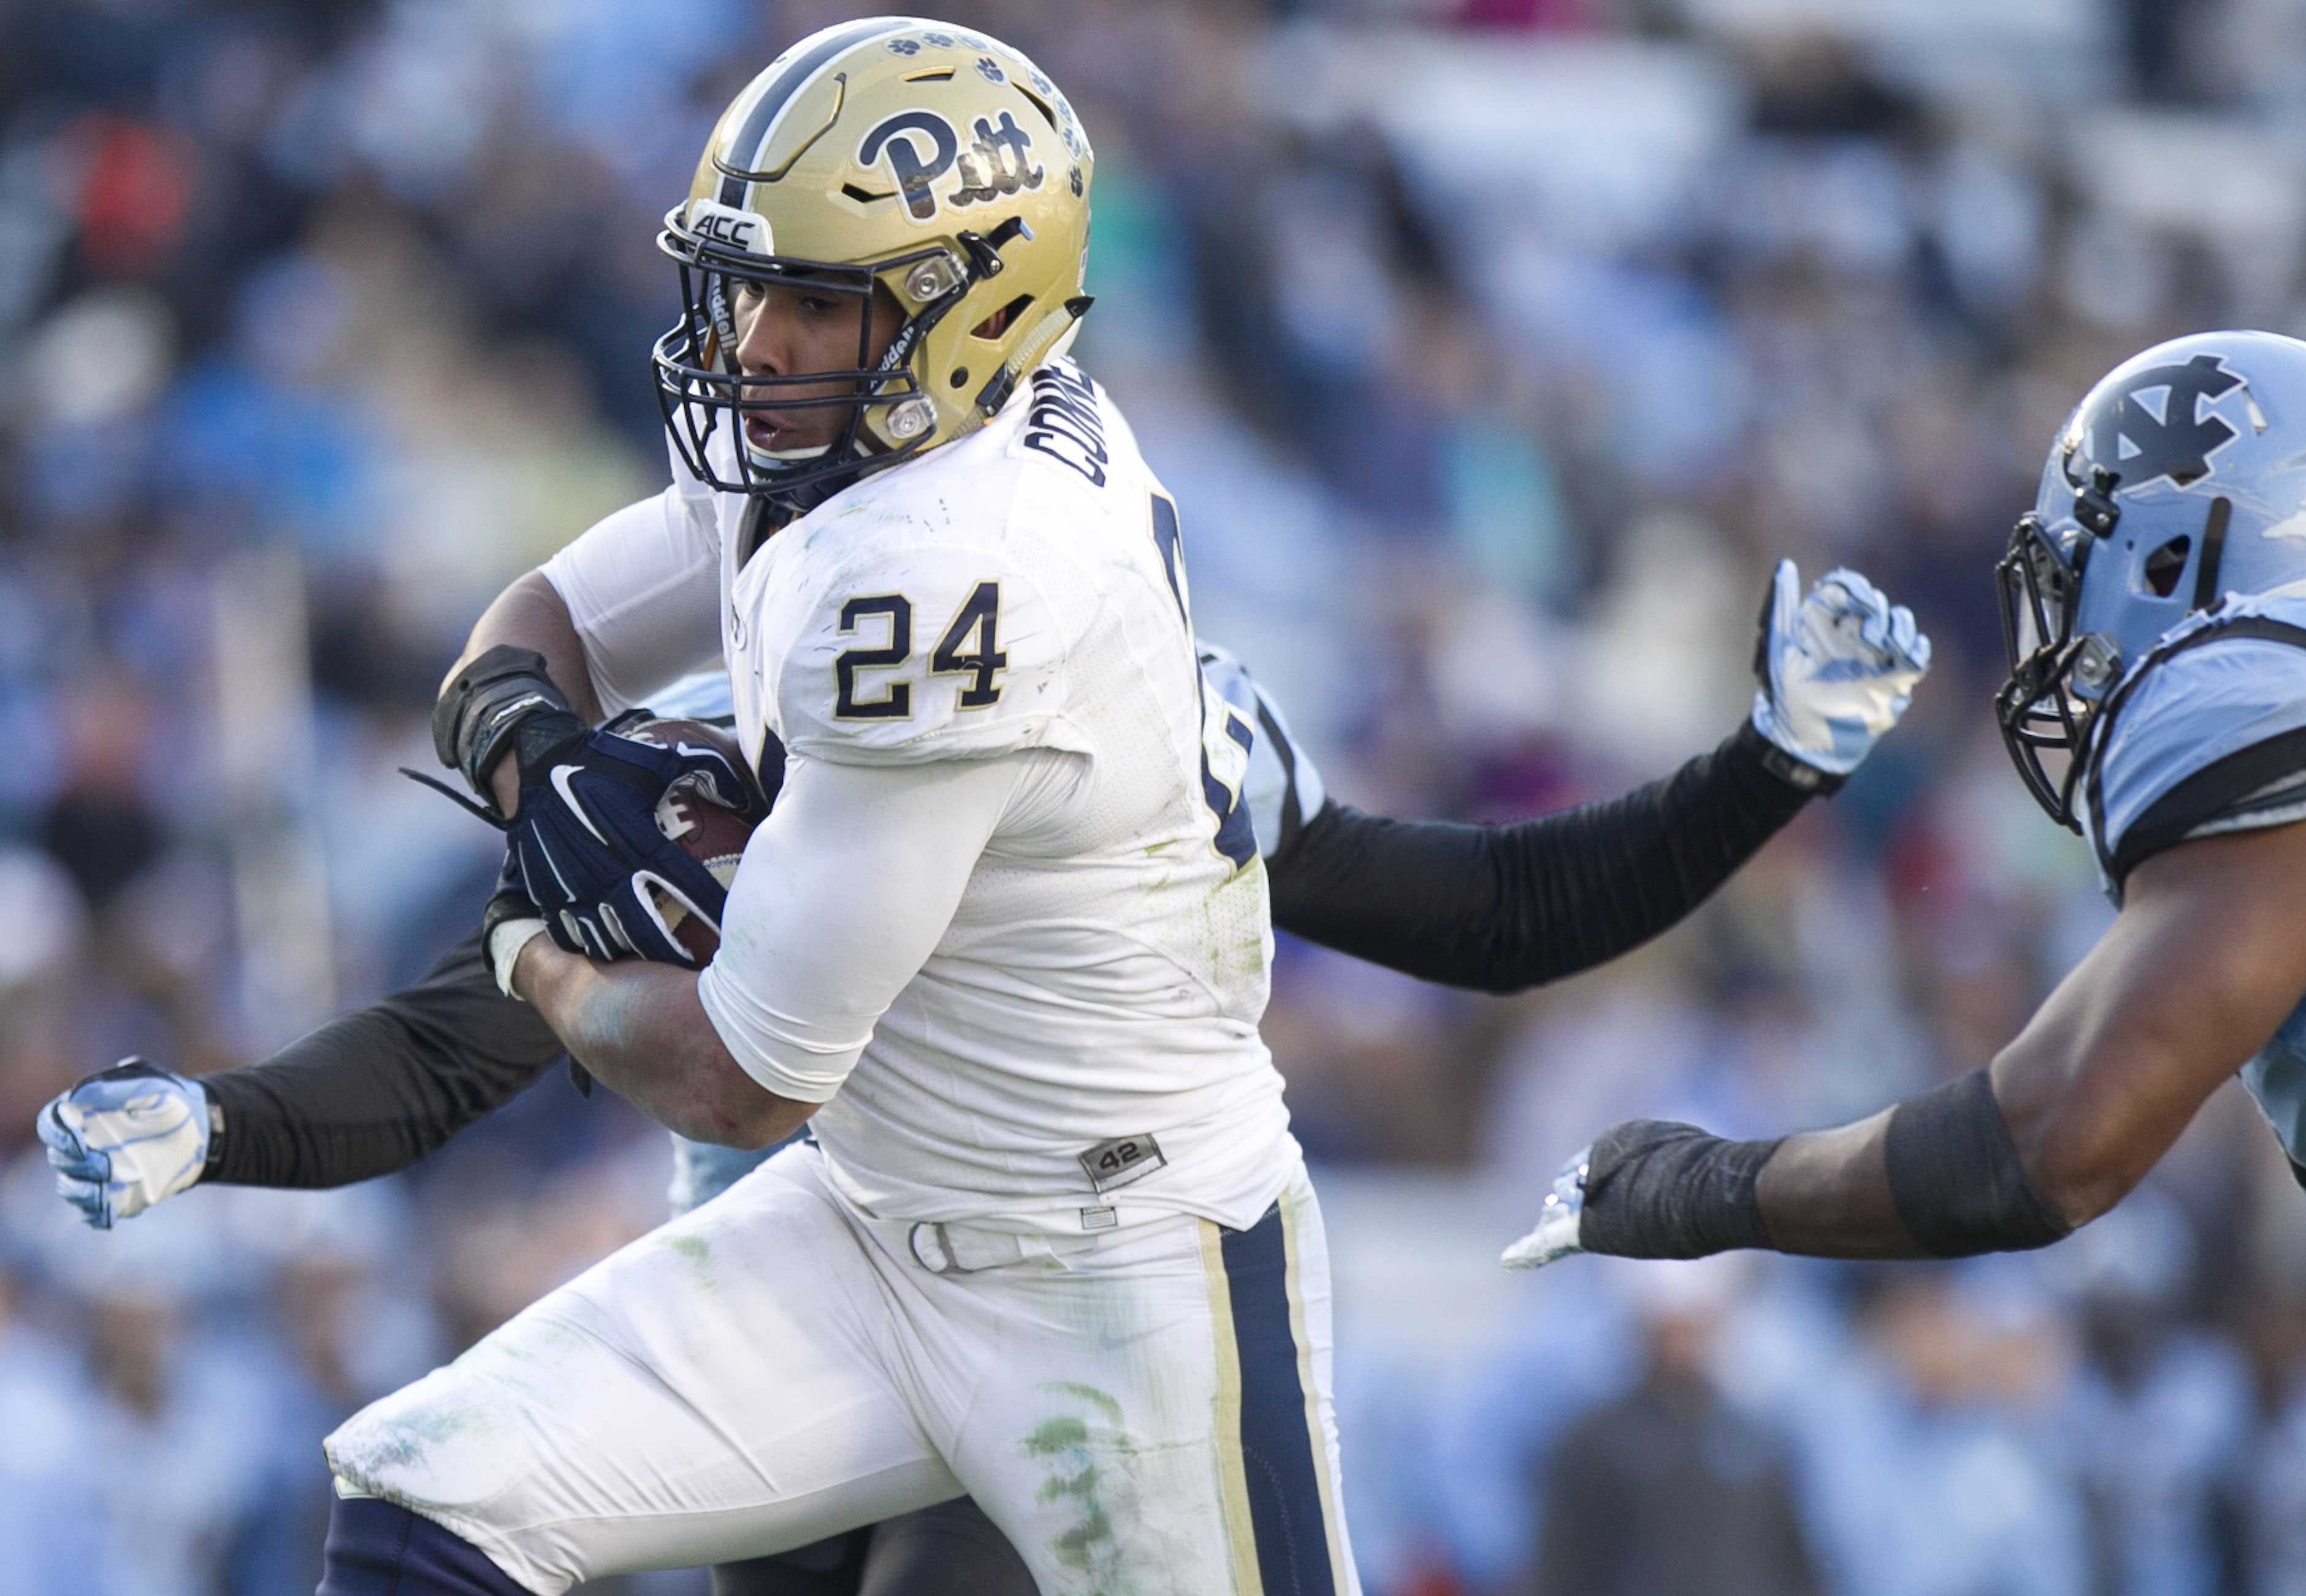 Pitt RB James Conner says he is cancer-free